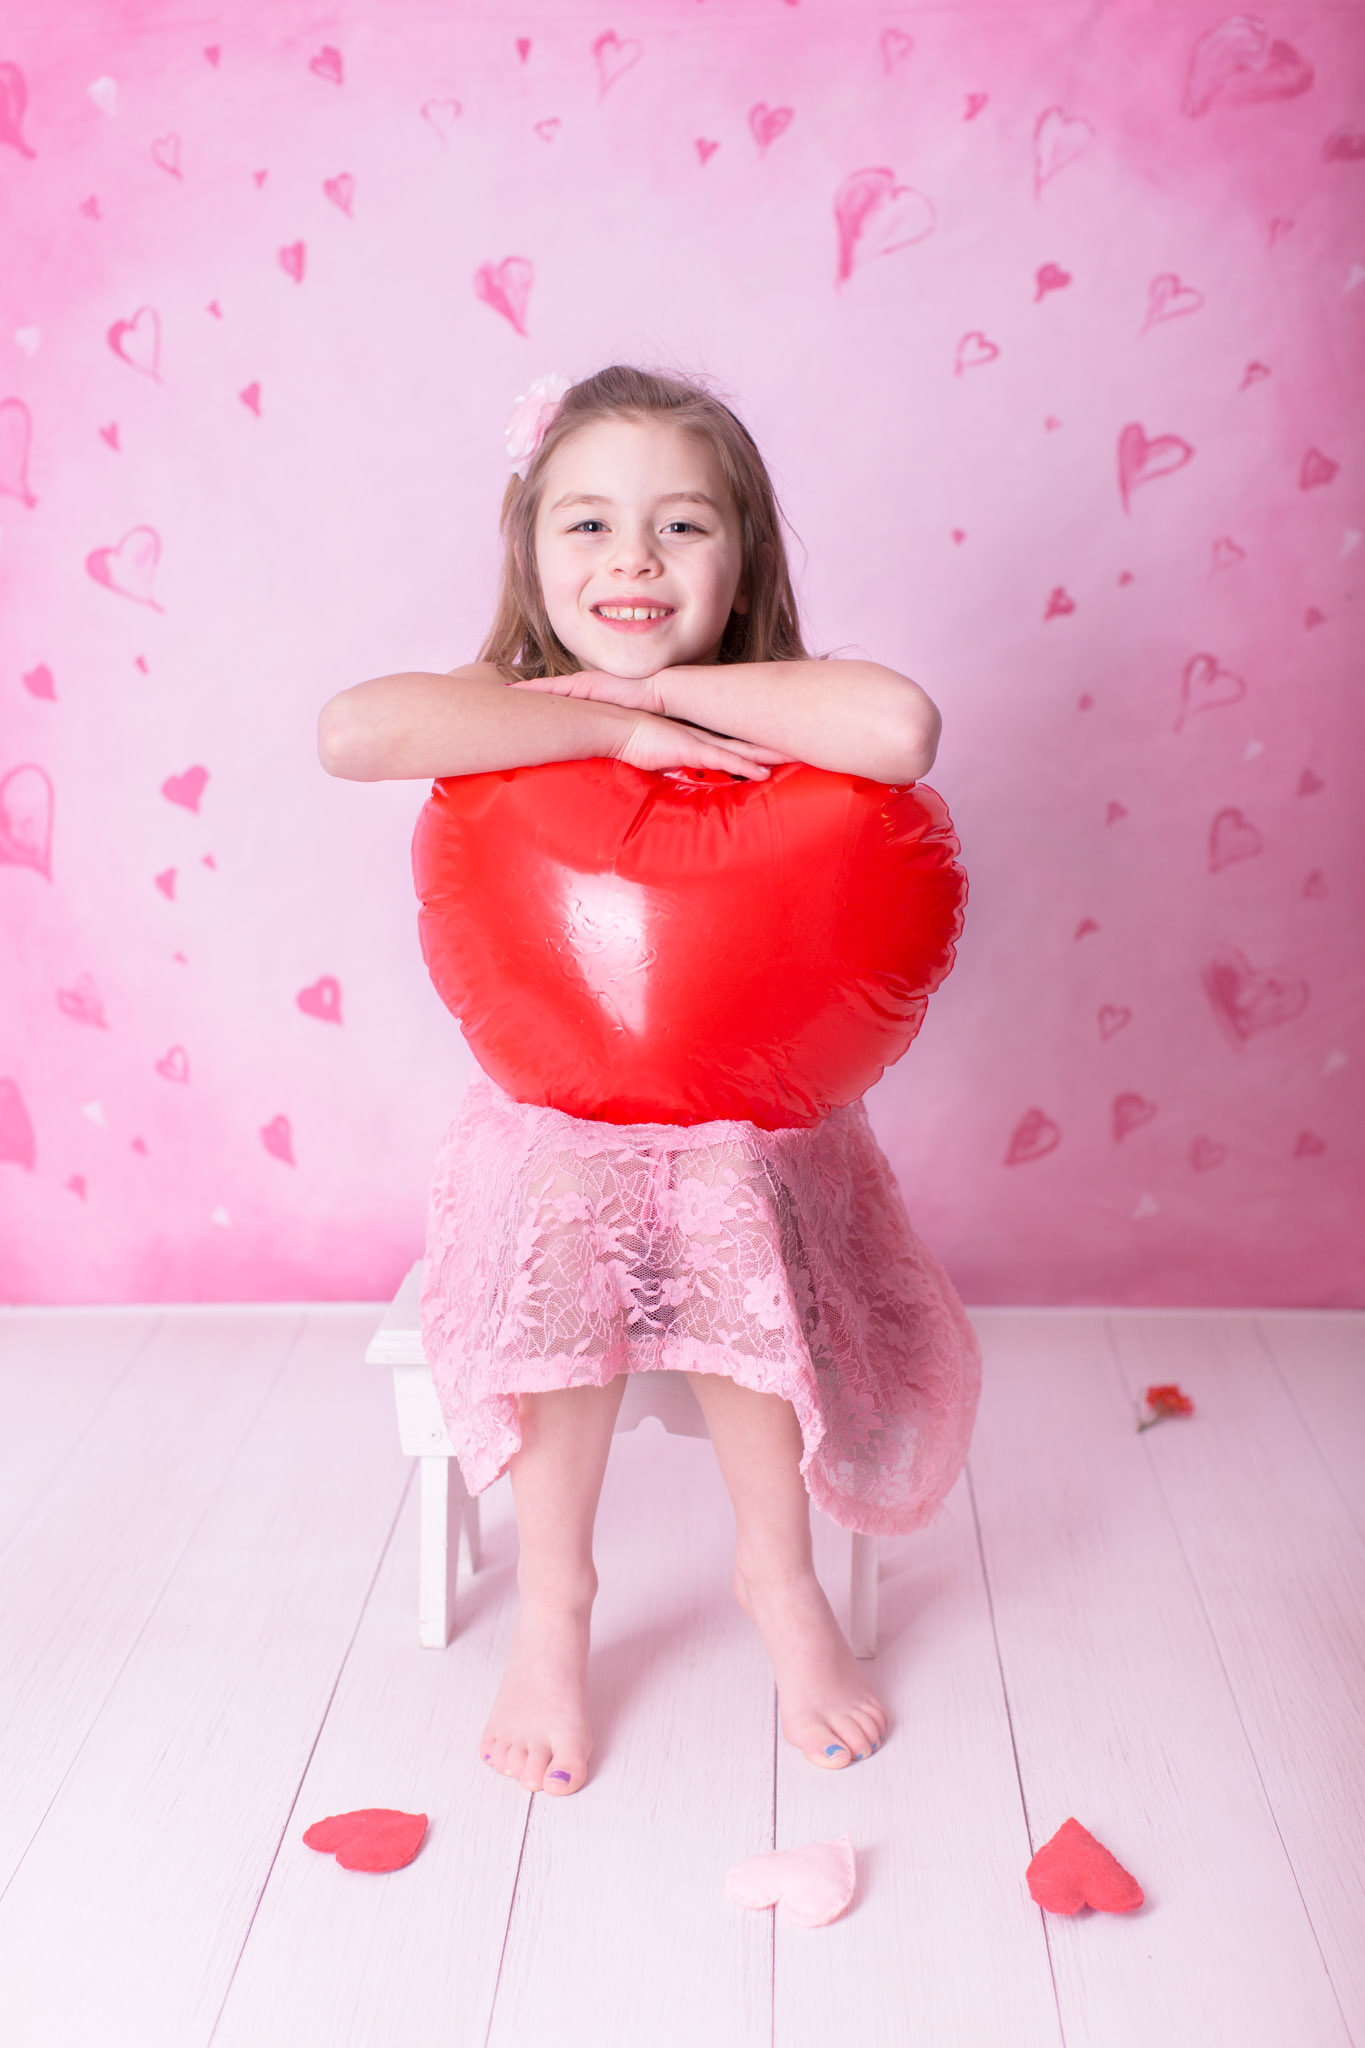 Image of the girl holding heart balloon and smiling for the camera